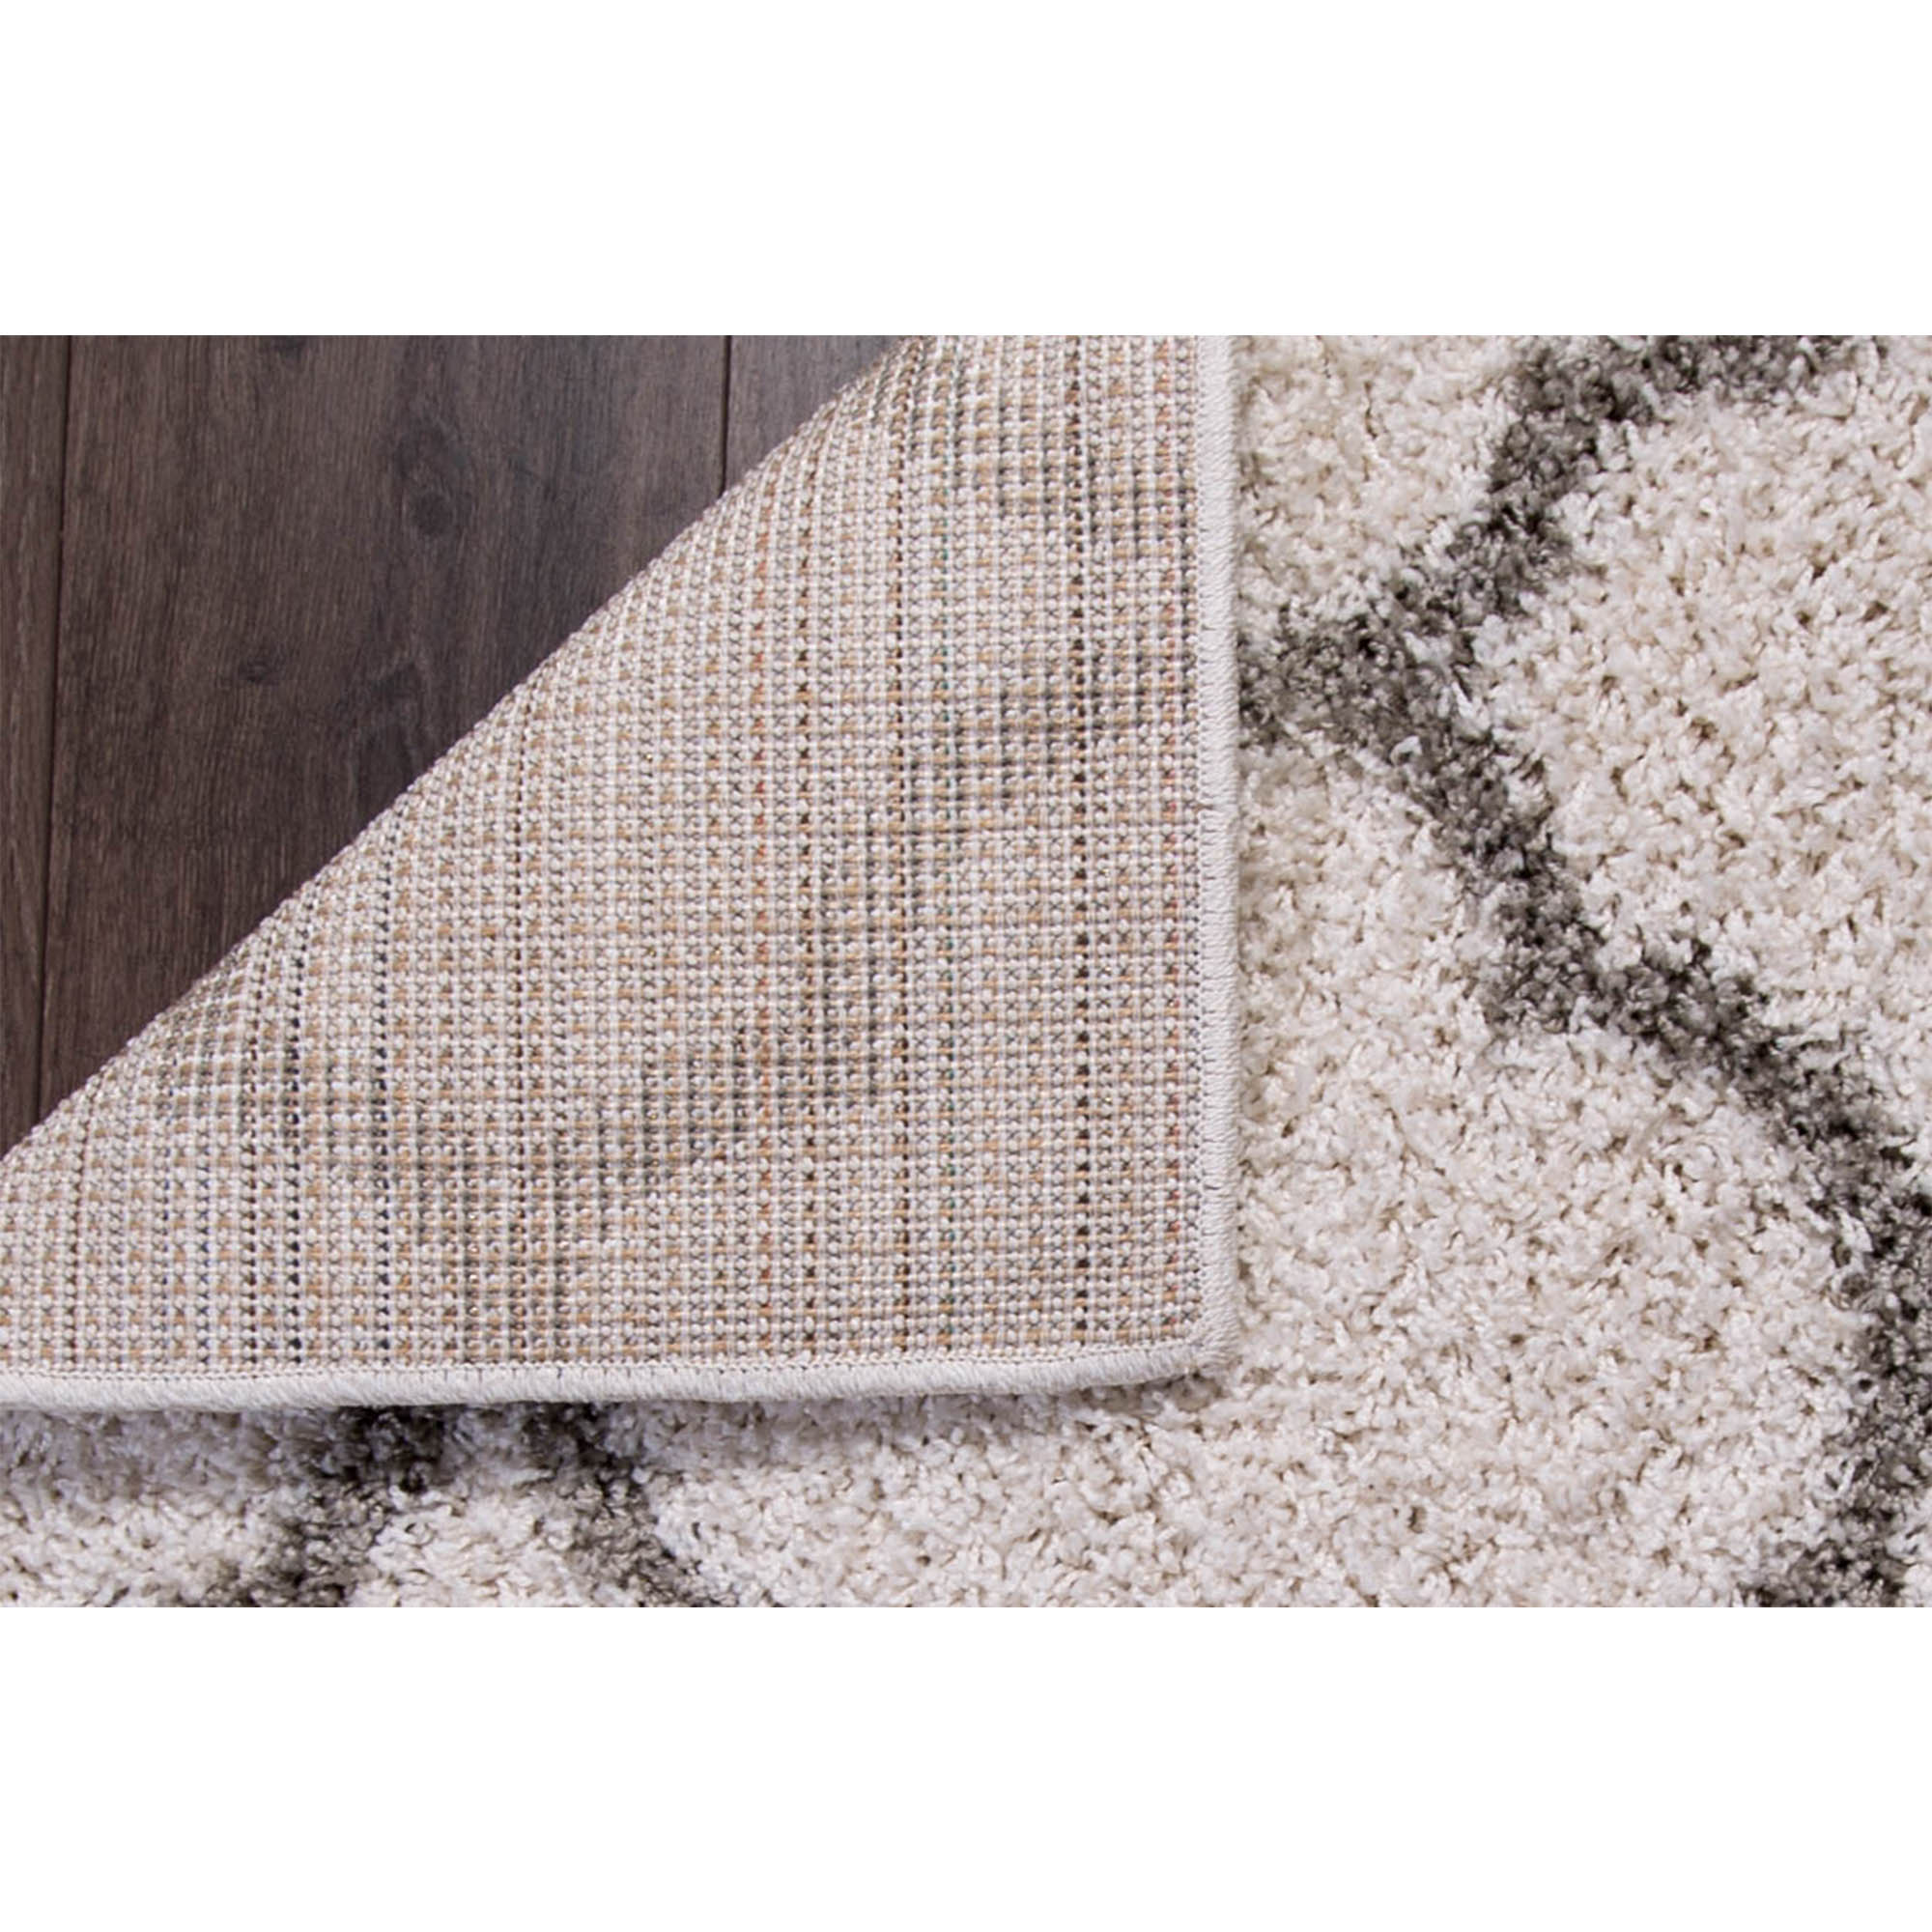 blue and unbelievable grand inspirational square design decoration rugs amazing rug cotton incredible area white miller nicole